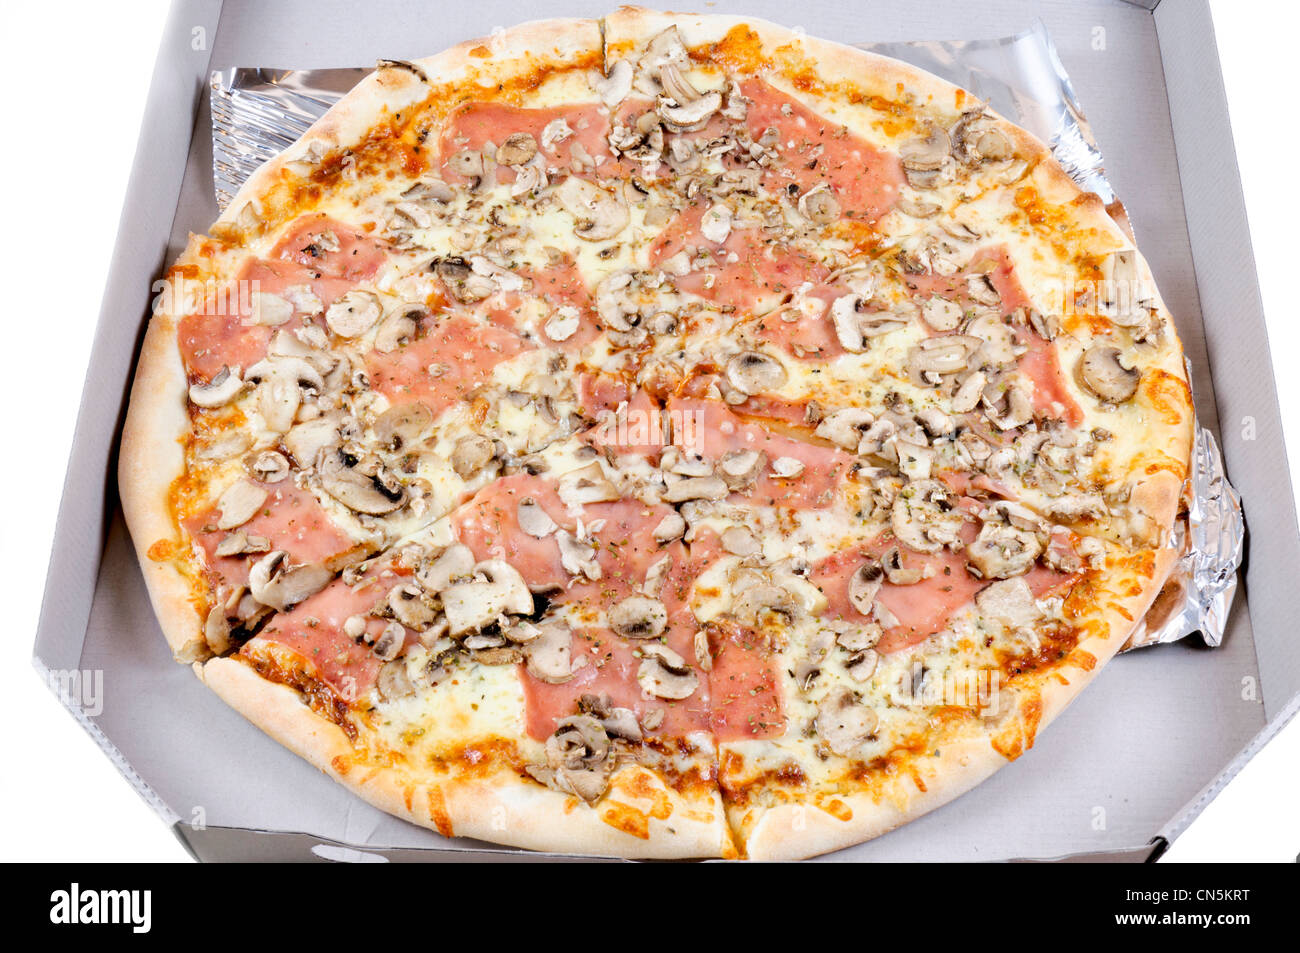 Pizza in the delivery box - Stock Image